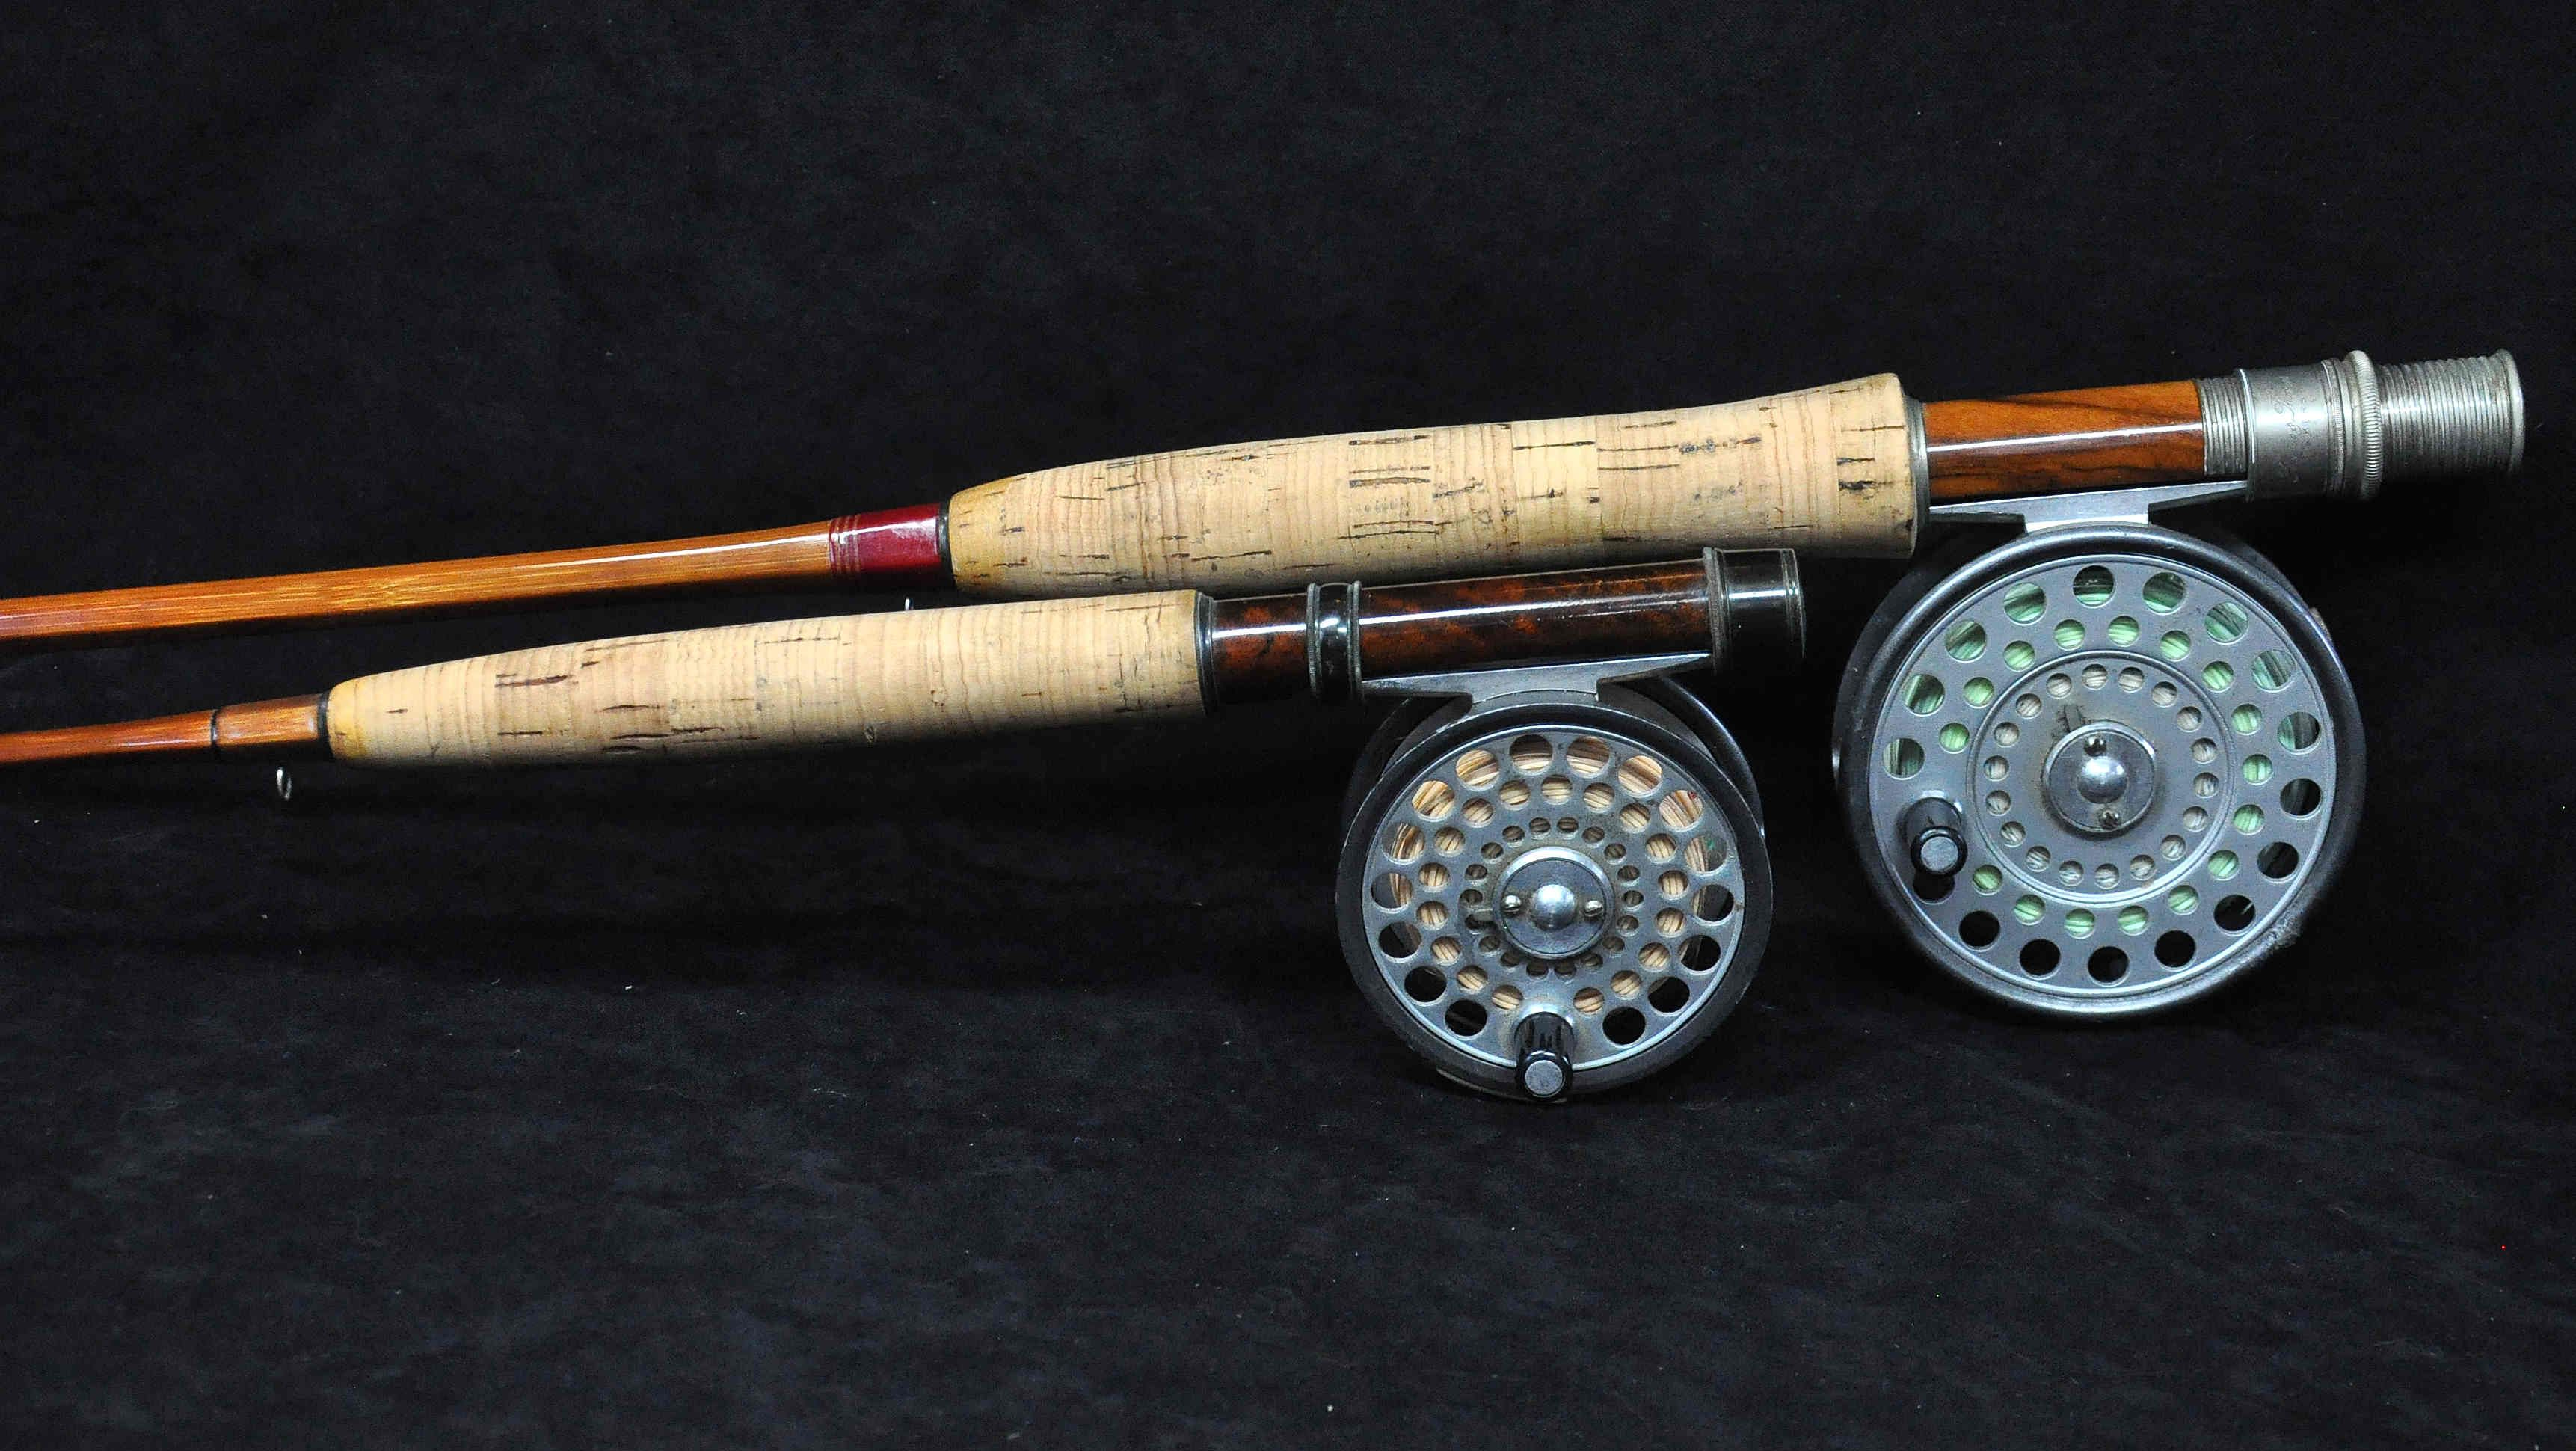 Thomas Thomas Bamboo What Fly Fishing Dreams Are Made Of Lower Rod Is A Caenis 6 1 2 2 5 Oz 3 Wt C 1985 U Bamboo Fly Rod Fly Rods Fly Fishing